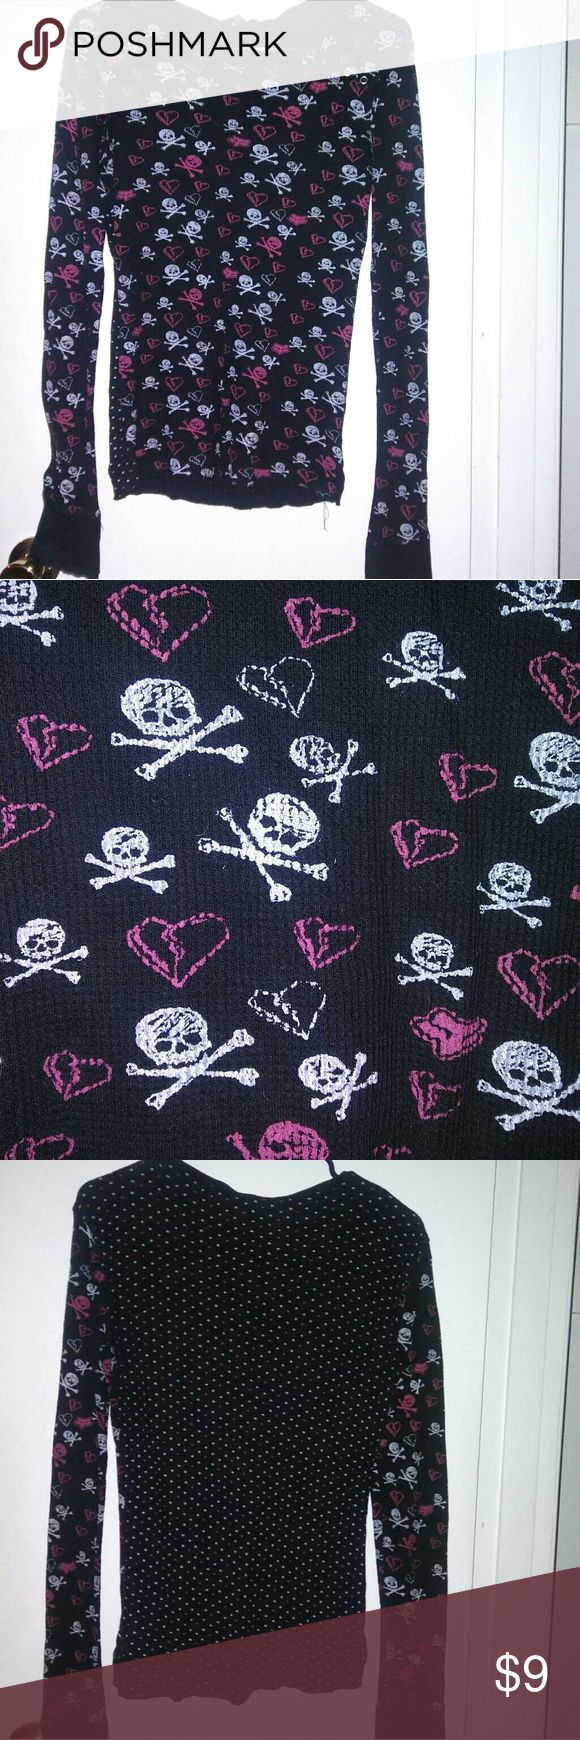 Long Sleeved Skull & Bones Shirt A black long sleeved shirt with pink and white skull & crossbones, broken hearts, and Fox brand logos. The front and sleeves have that pattern, but the back has pink and white polka dots. There are 4 buttons by the neck of the shirt that are functioning. Has been loved, but is in great condition. Fox Tops Tees - Long Sleeve